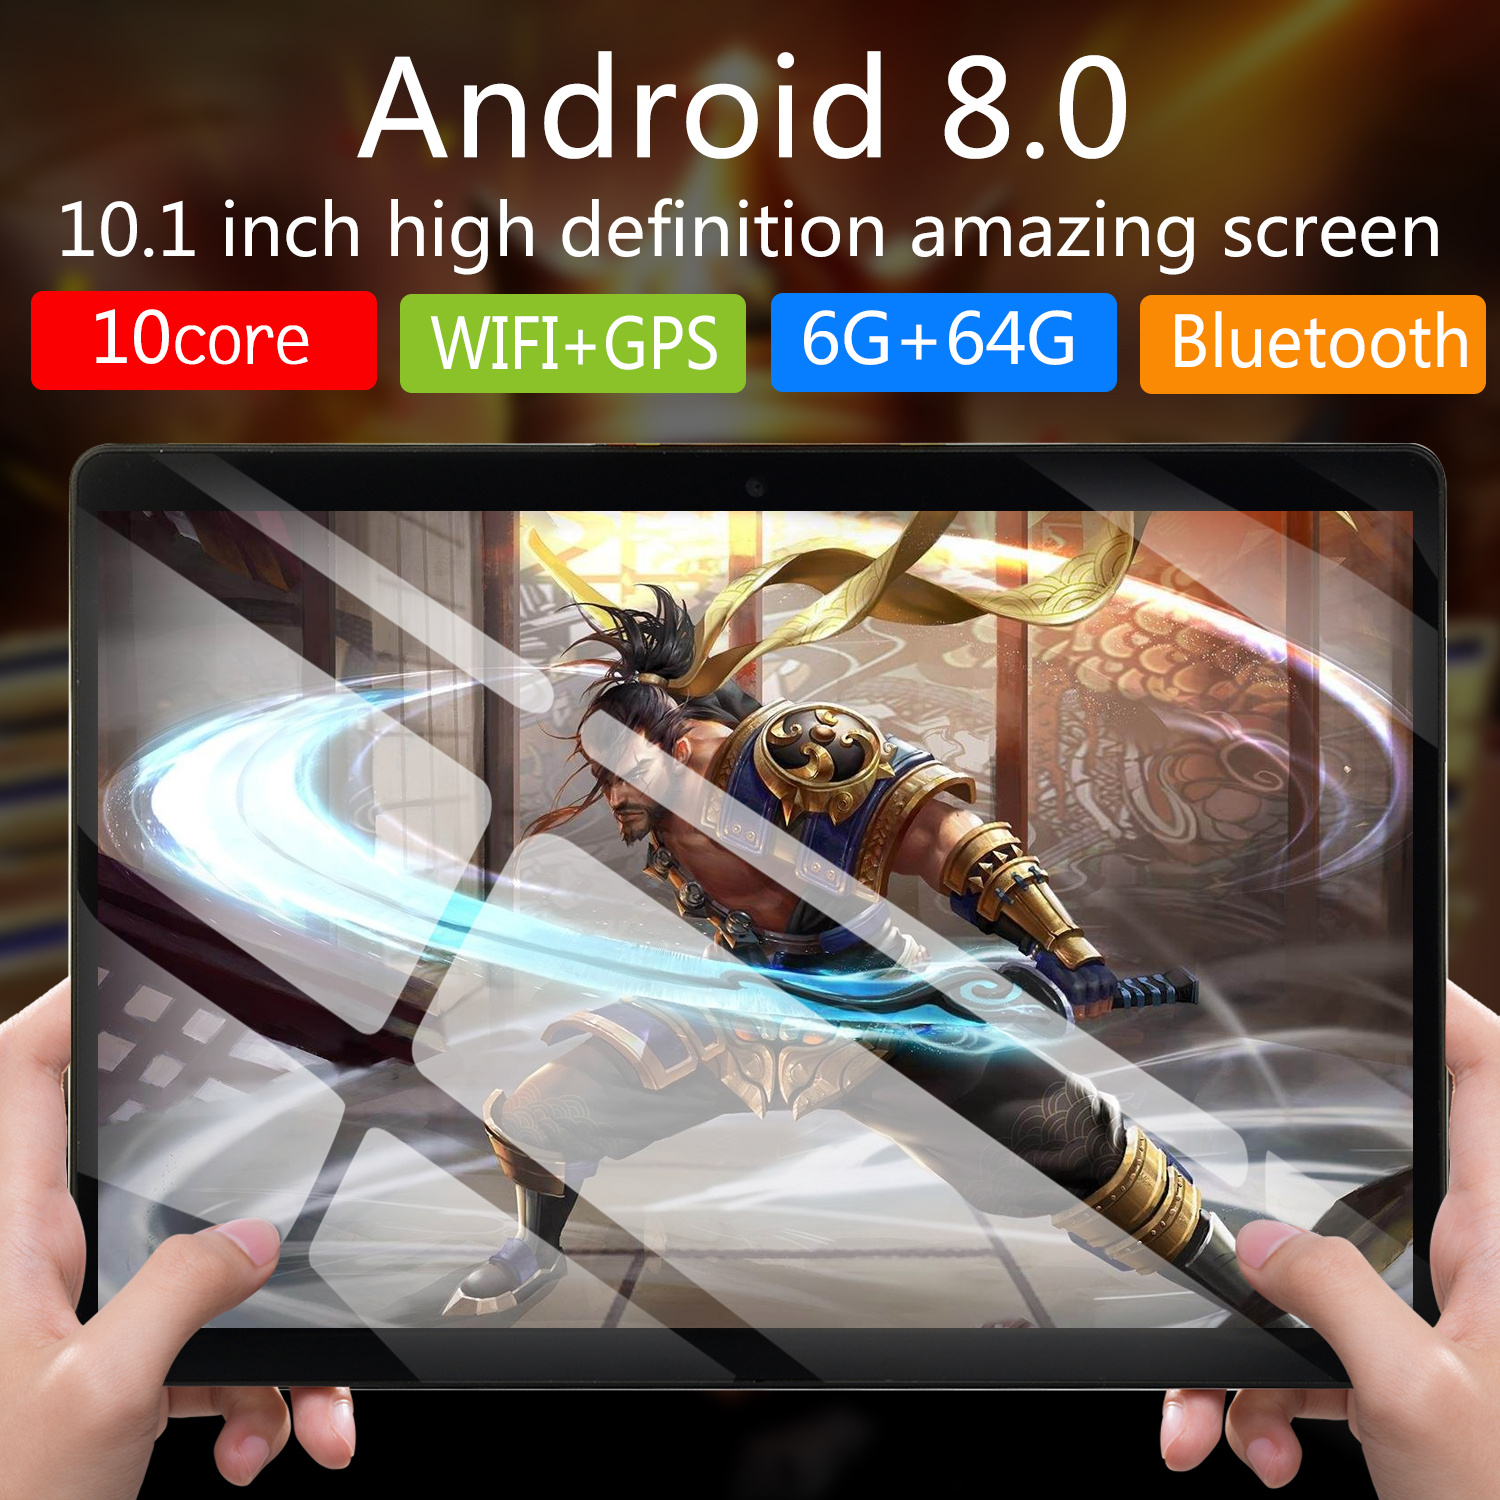 Android 8.0 Octa Core Ram 6GB ROM 64GB Camera Wifi 10 Inch Tablet 4G FDD Tablette Phablet 10.1 Tablet Screen Mutlti Touch